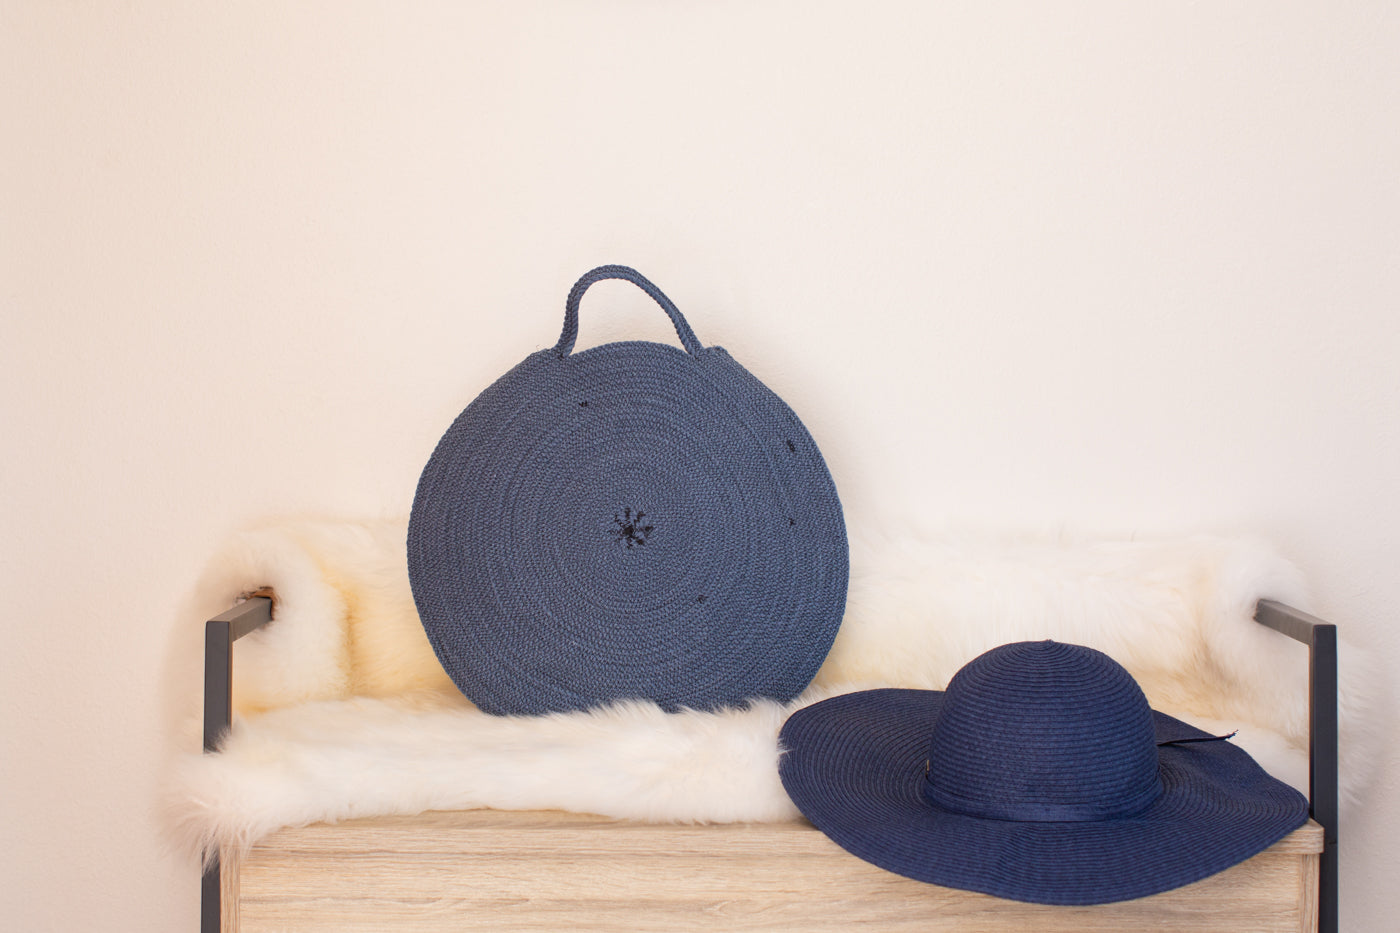 Navy blue rope bowl and navy sun hat sitting on a birch bench with black iron sides.  One top of the bench is a sheepskin fur with the rope bowl and hat sitting on top.